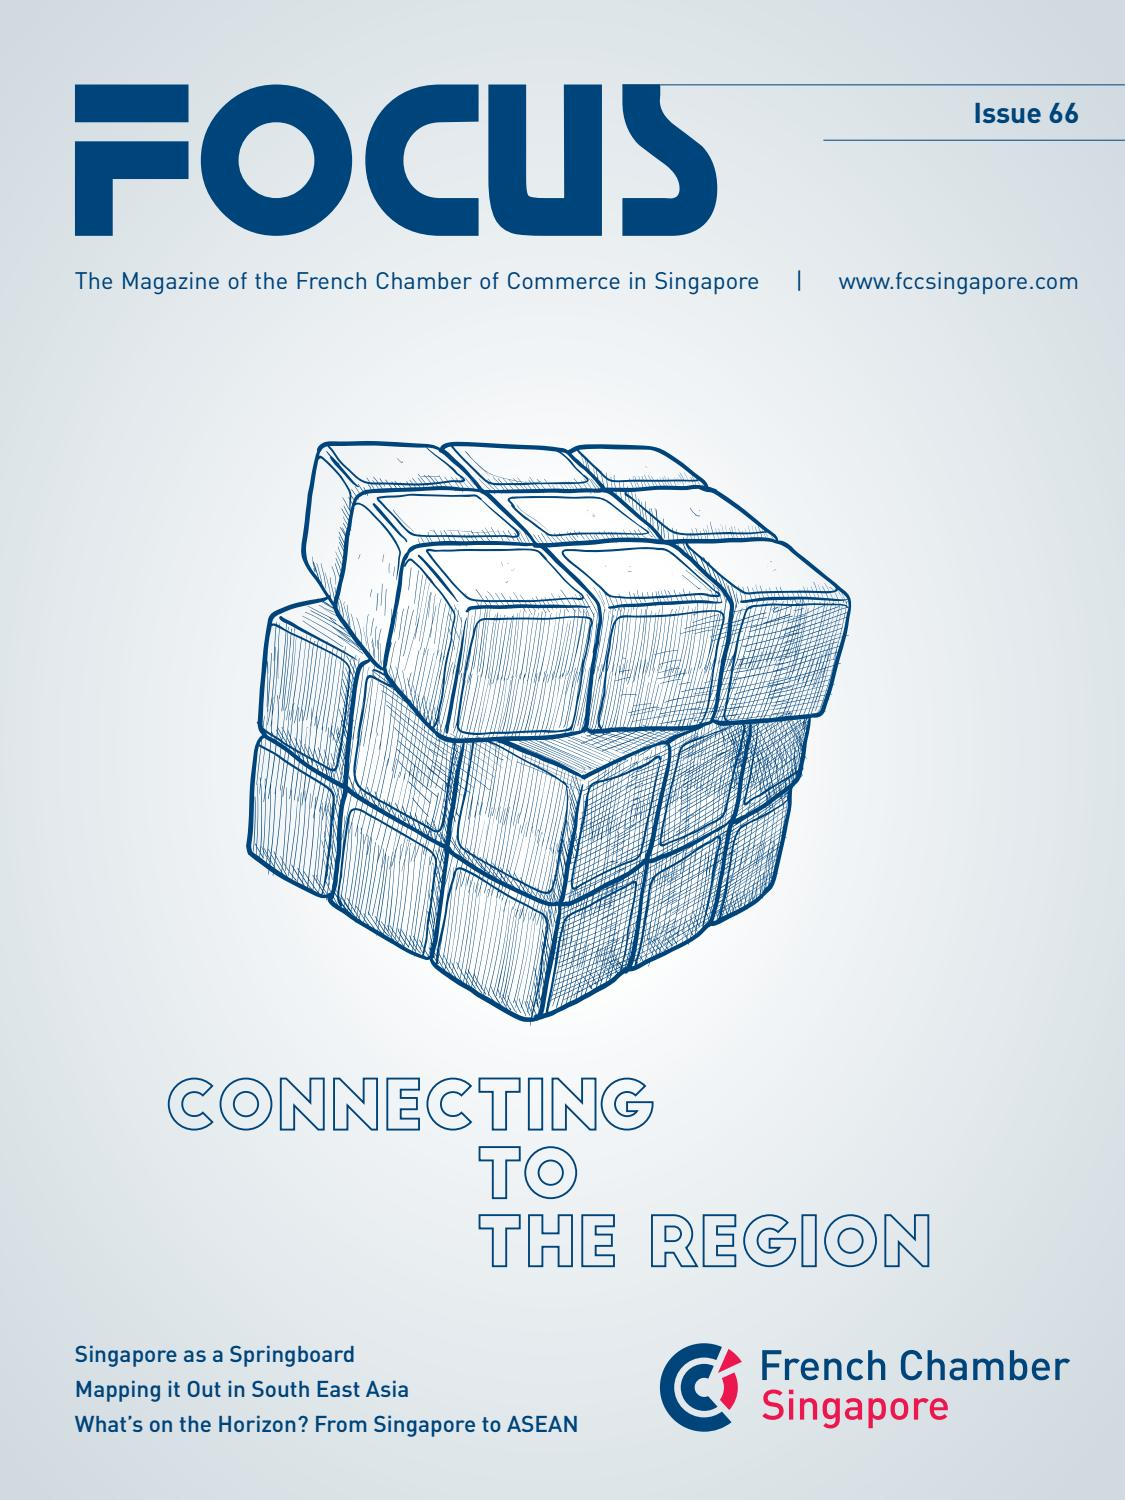 FOCUS Magazine - Connecting to the Region from Singapore by